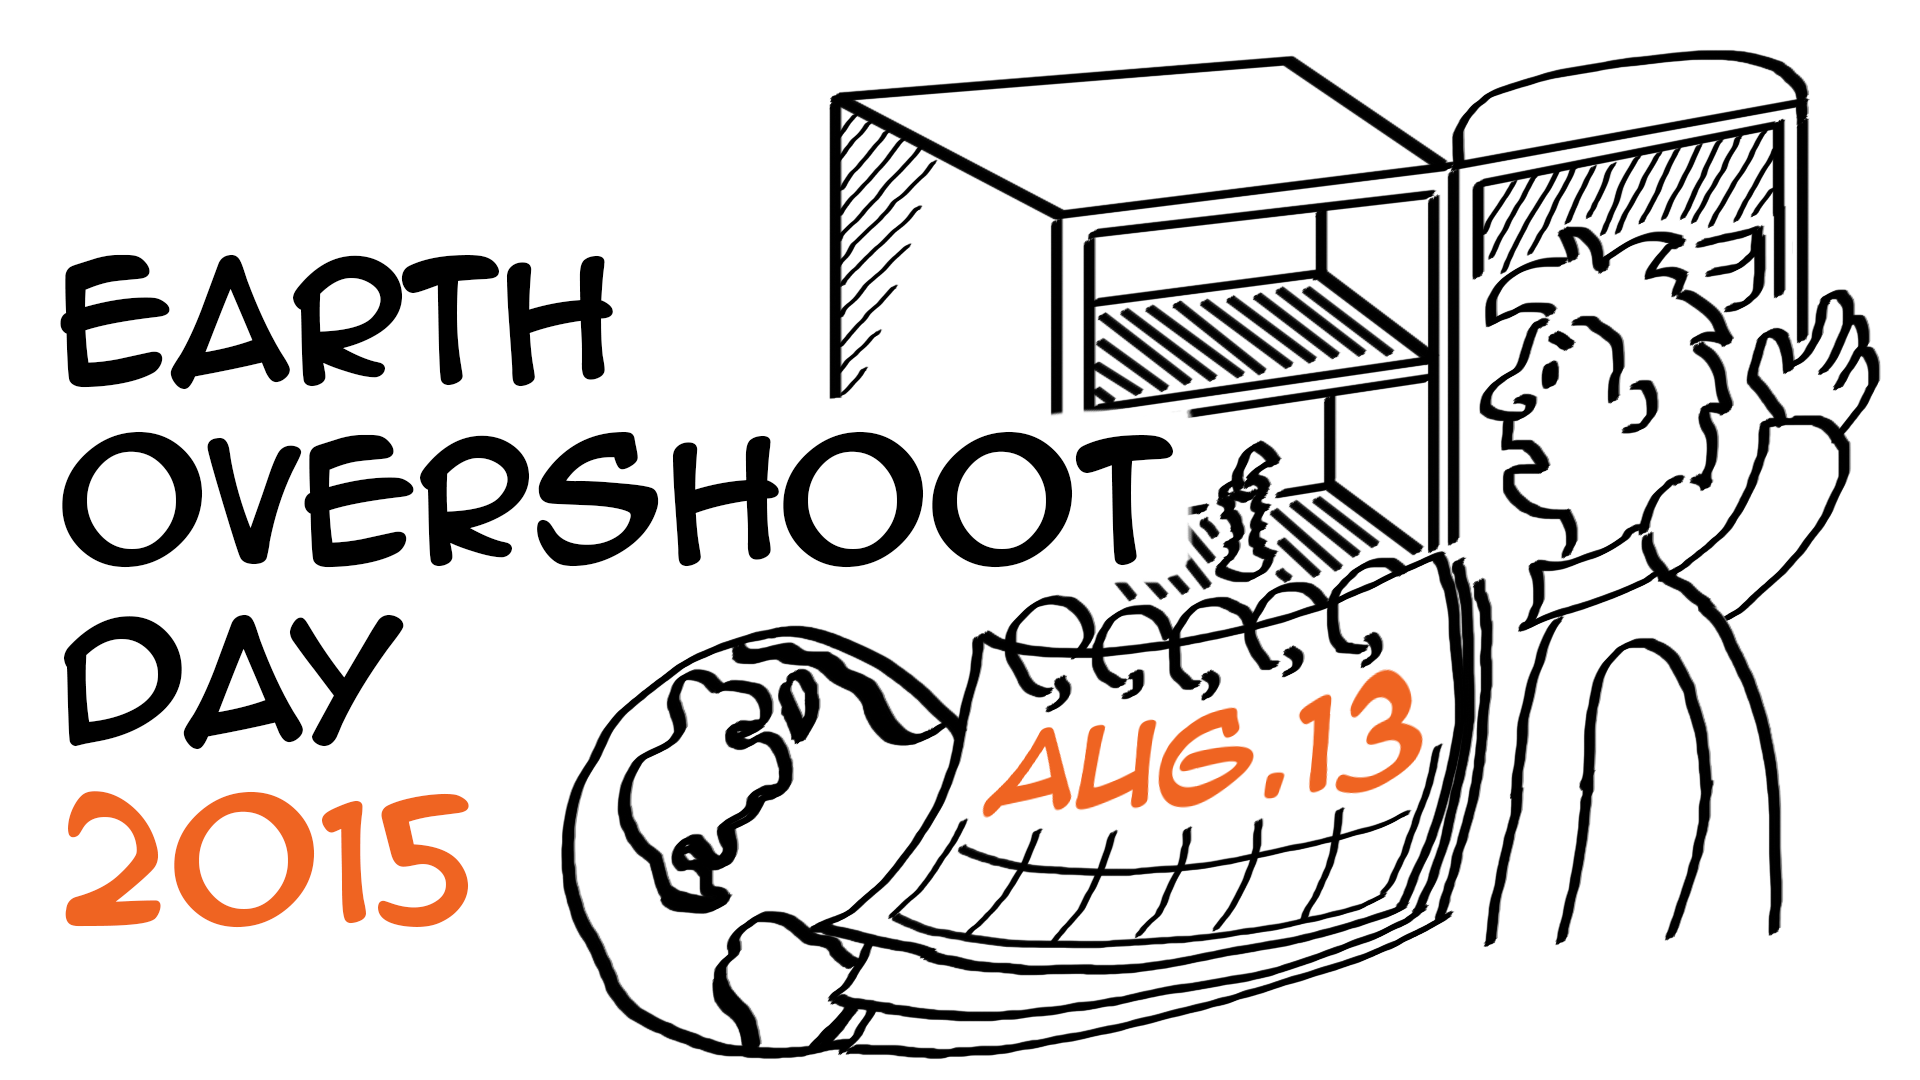 Earth Overshoot Day 2015 is on August 13th